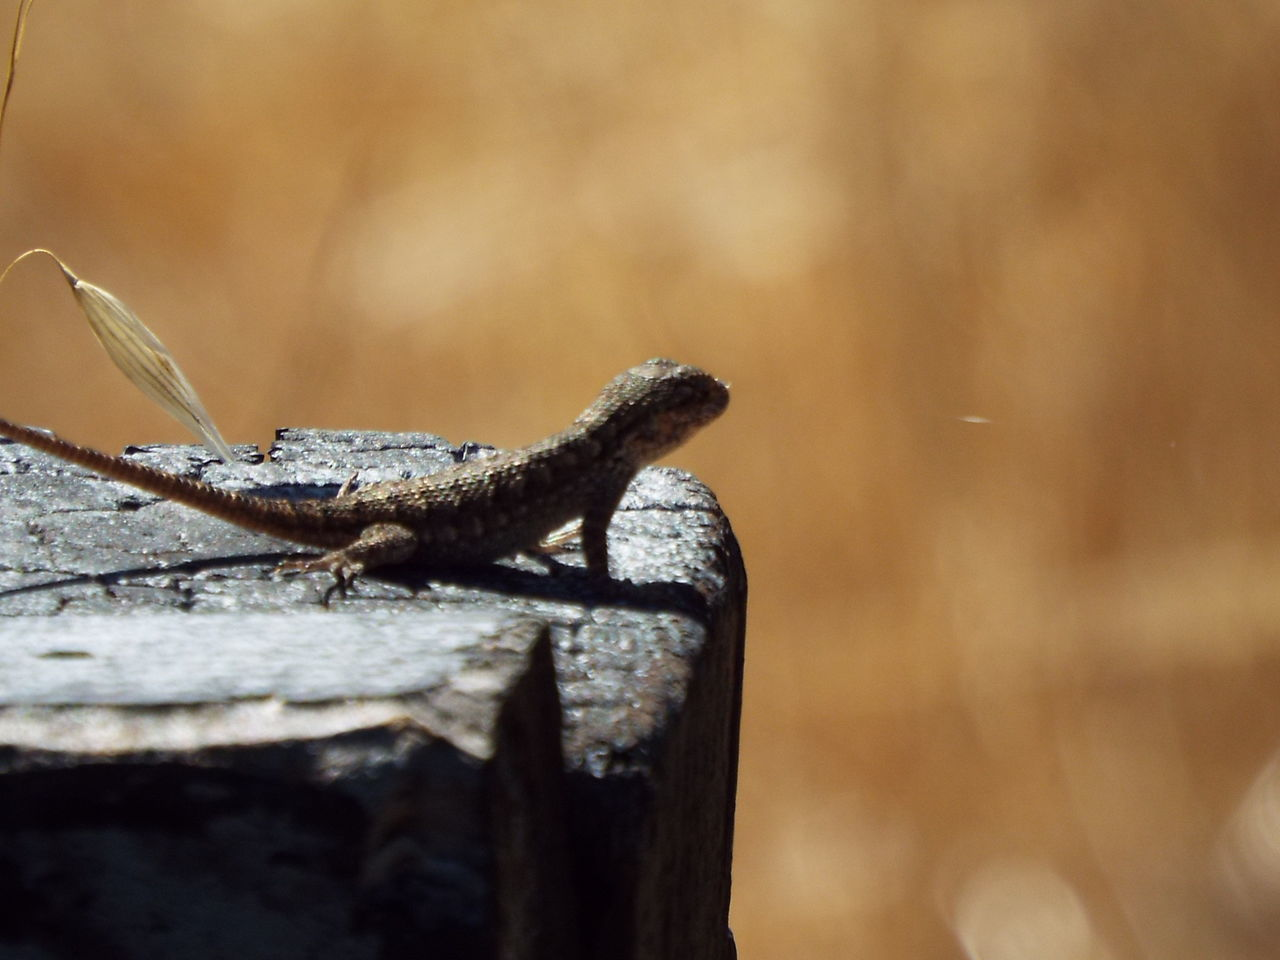 one animal, animals in the wild, animal themes, animal wildlife, day, reptile, outdoors, no people, focus on foreground, close-up, nature, full length